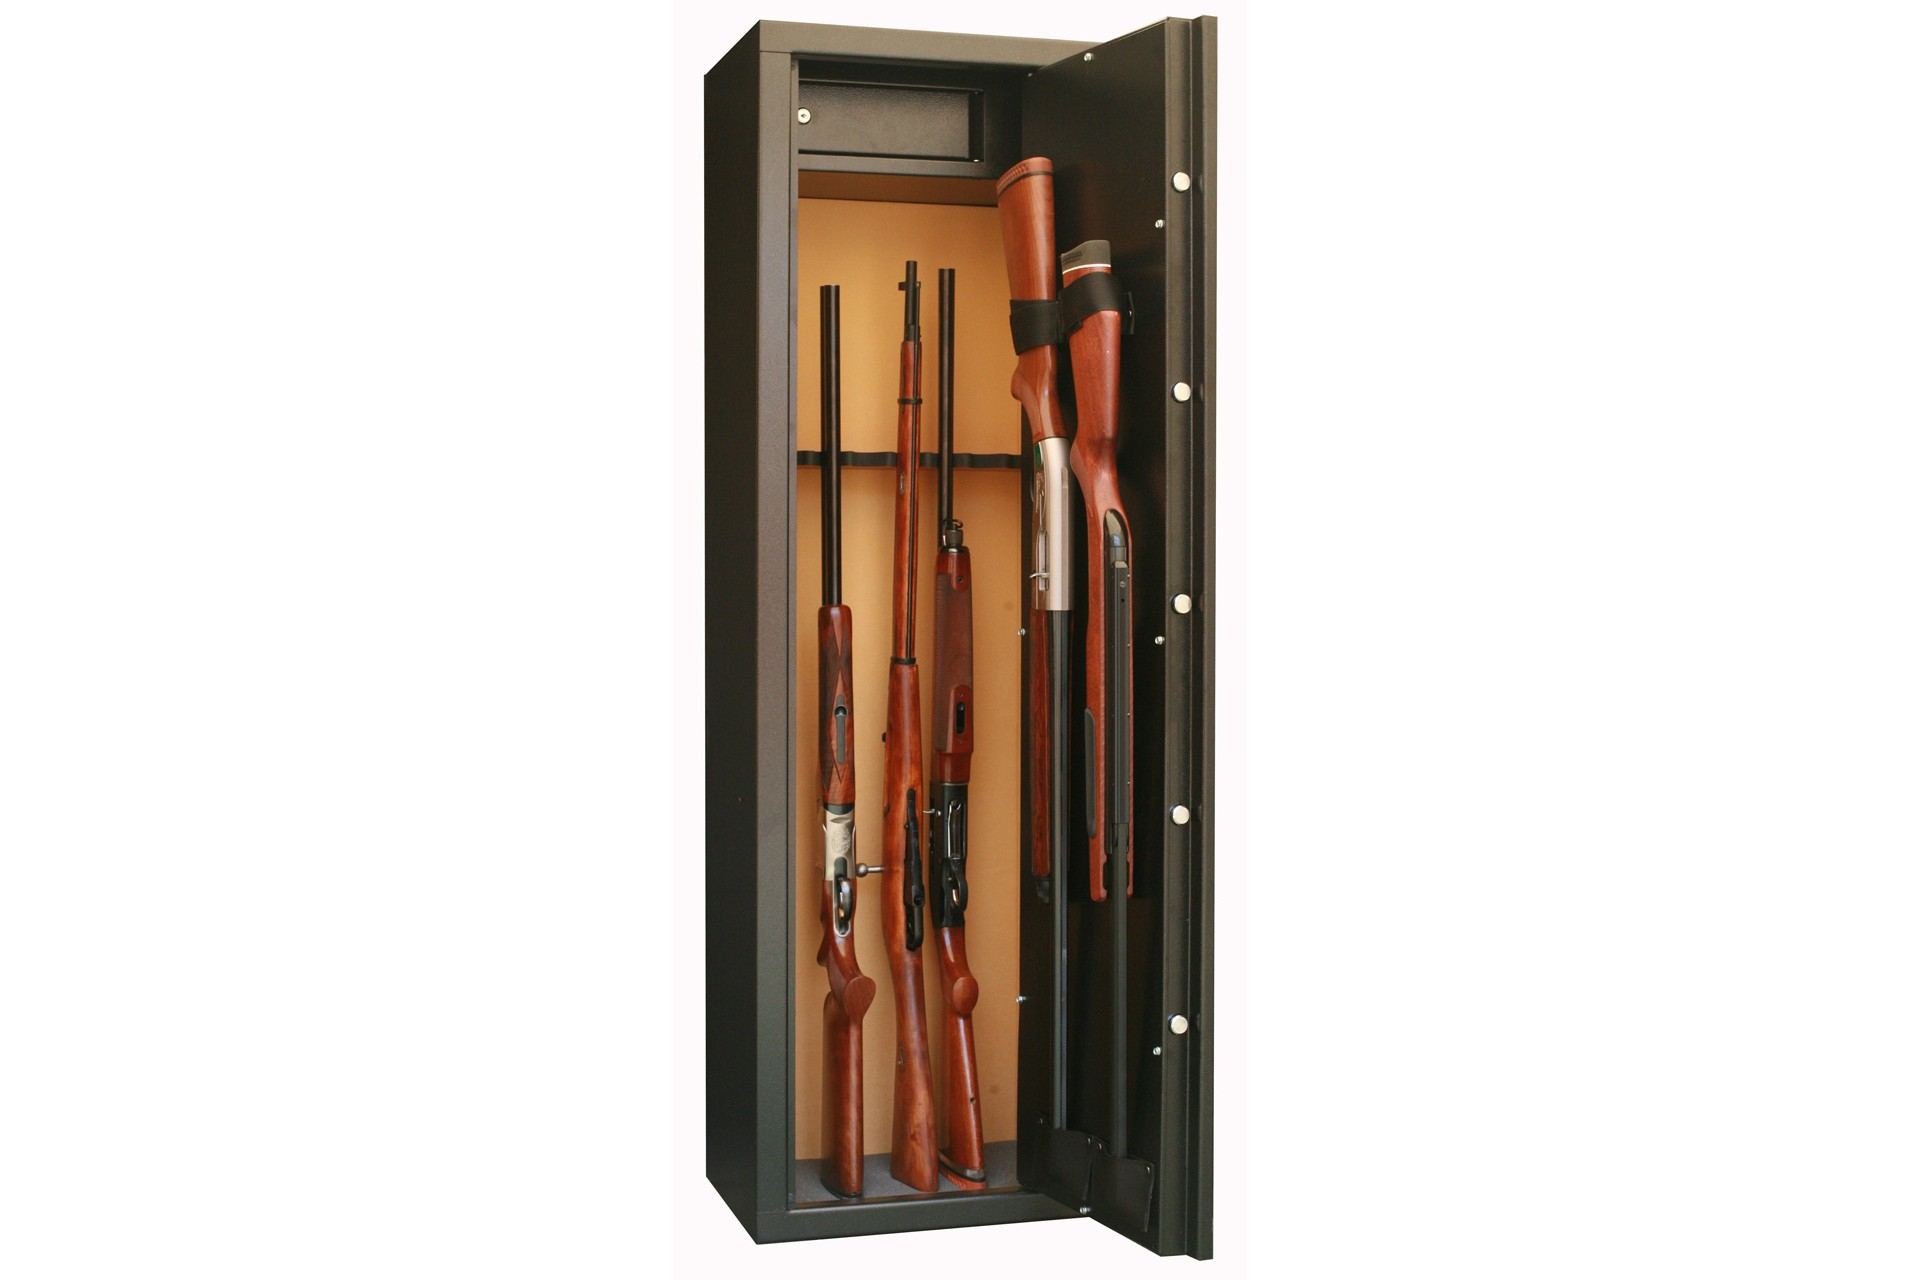 Best Of Sentinel 10 Gun Security Cabinet